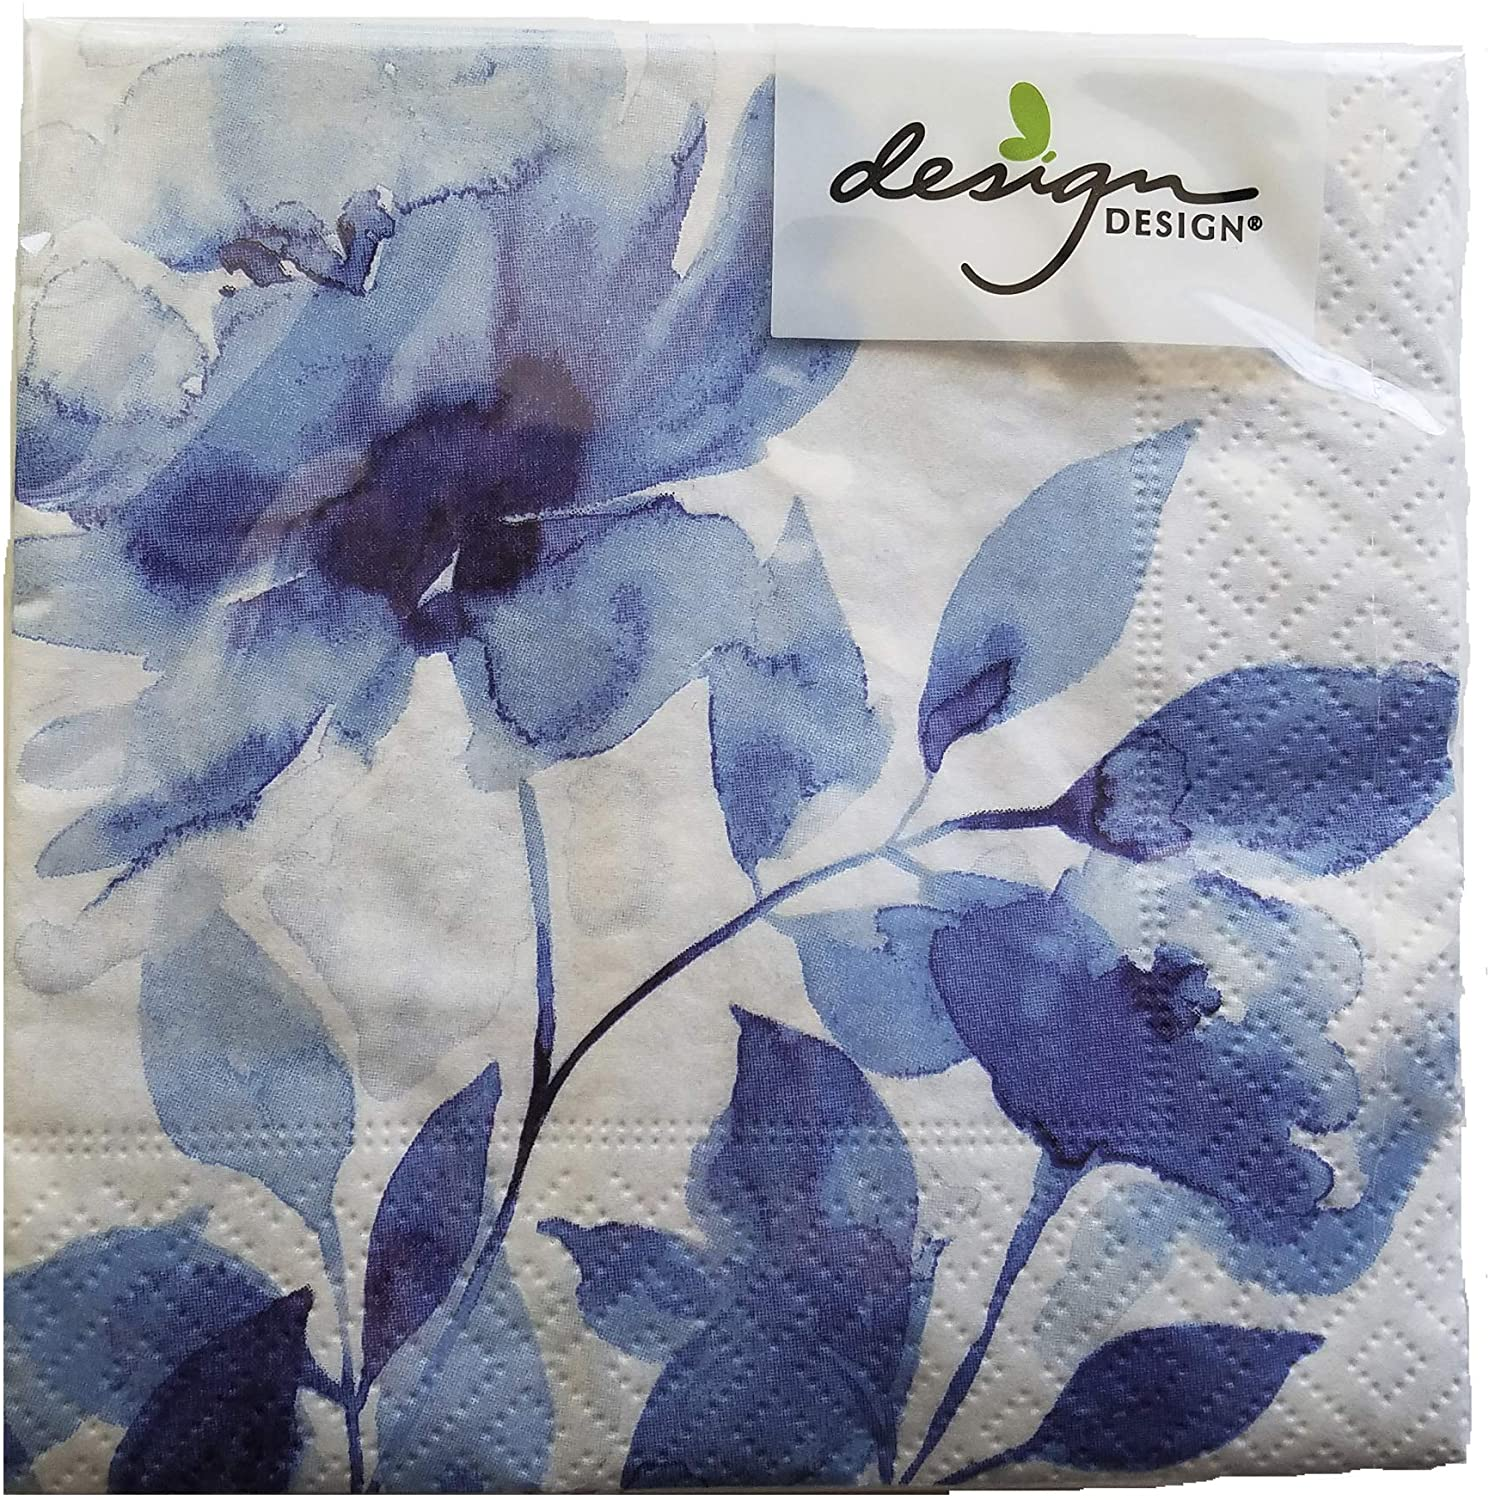 Blue and White Watercolor Floral Beverage Cocktail Napkins - 5x5 Inch Square